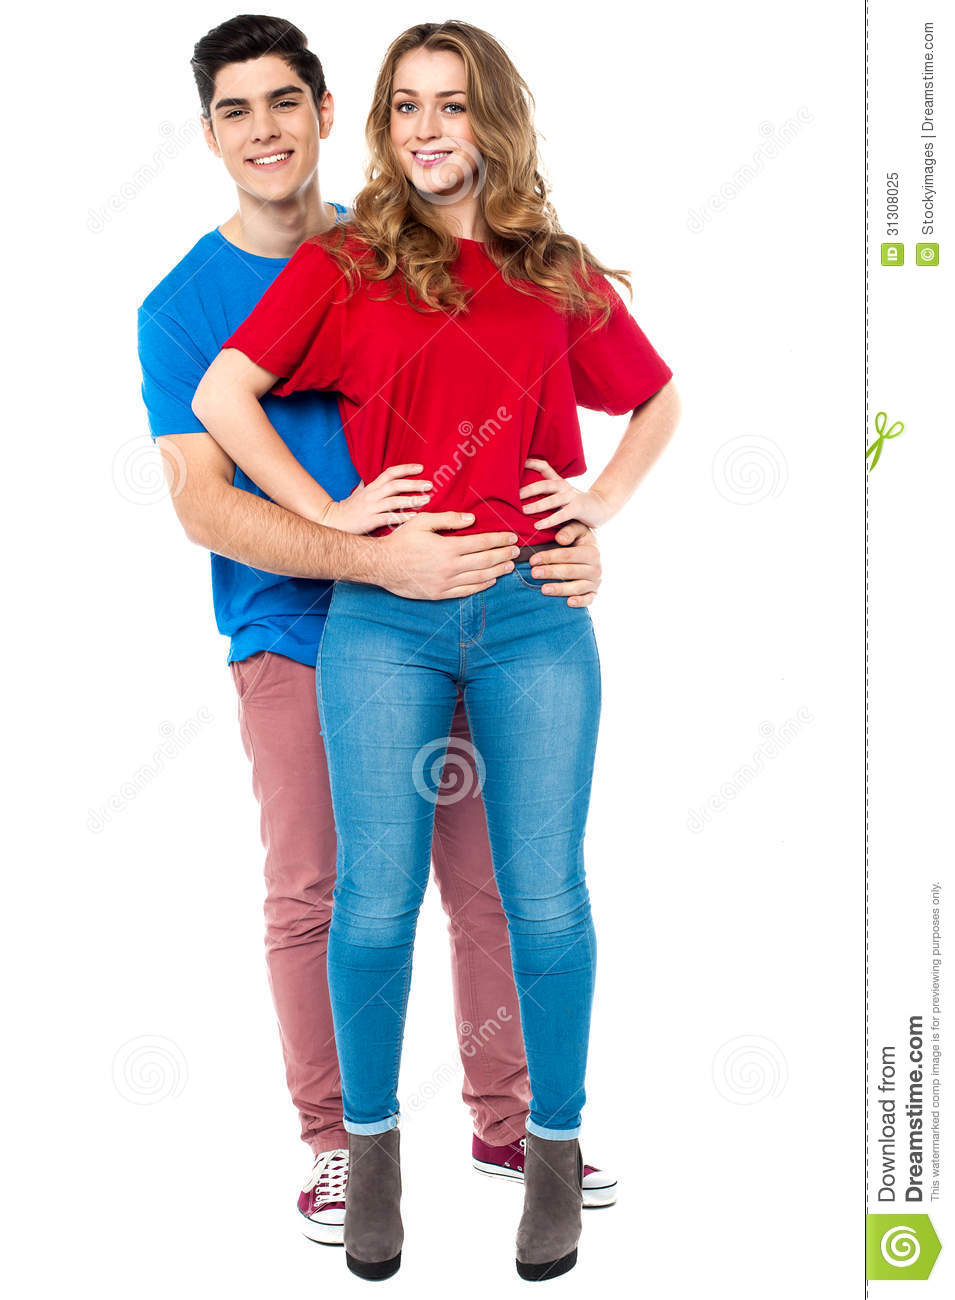 Guy embracing his girl from behind, arms around